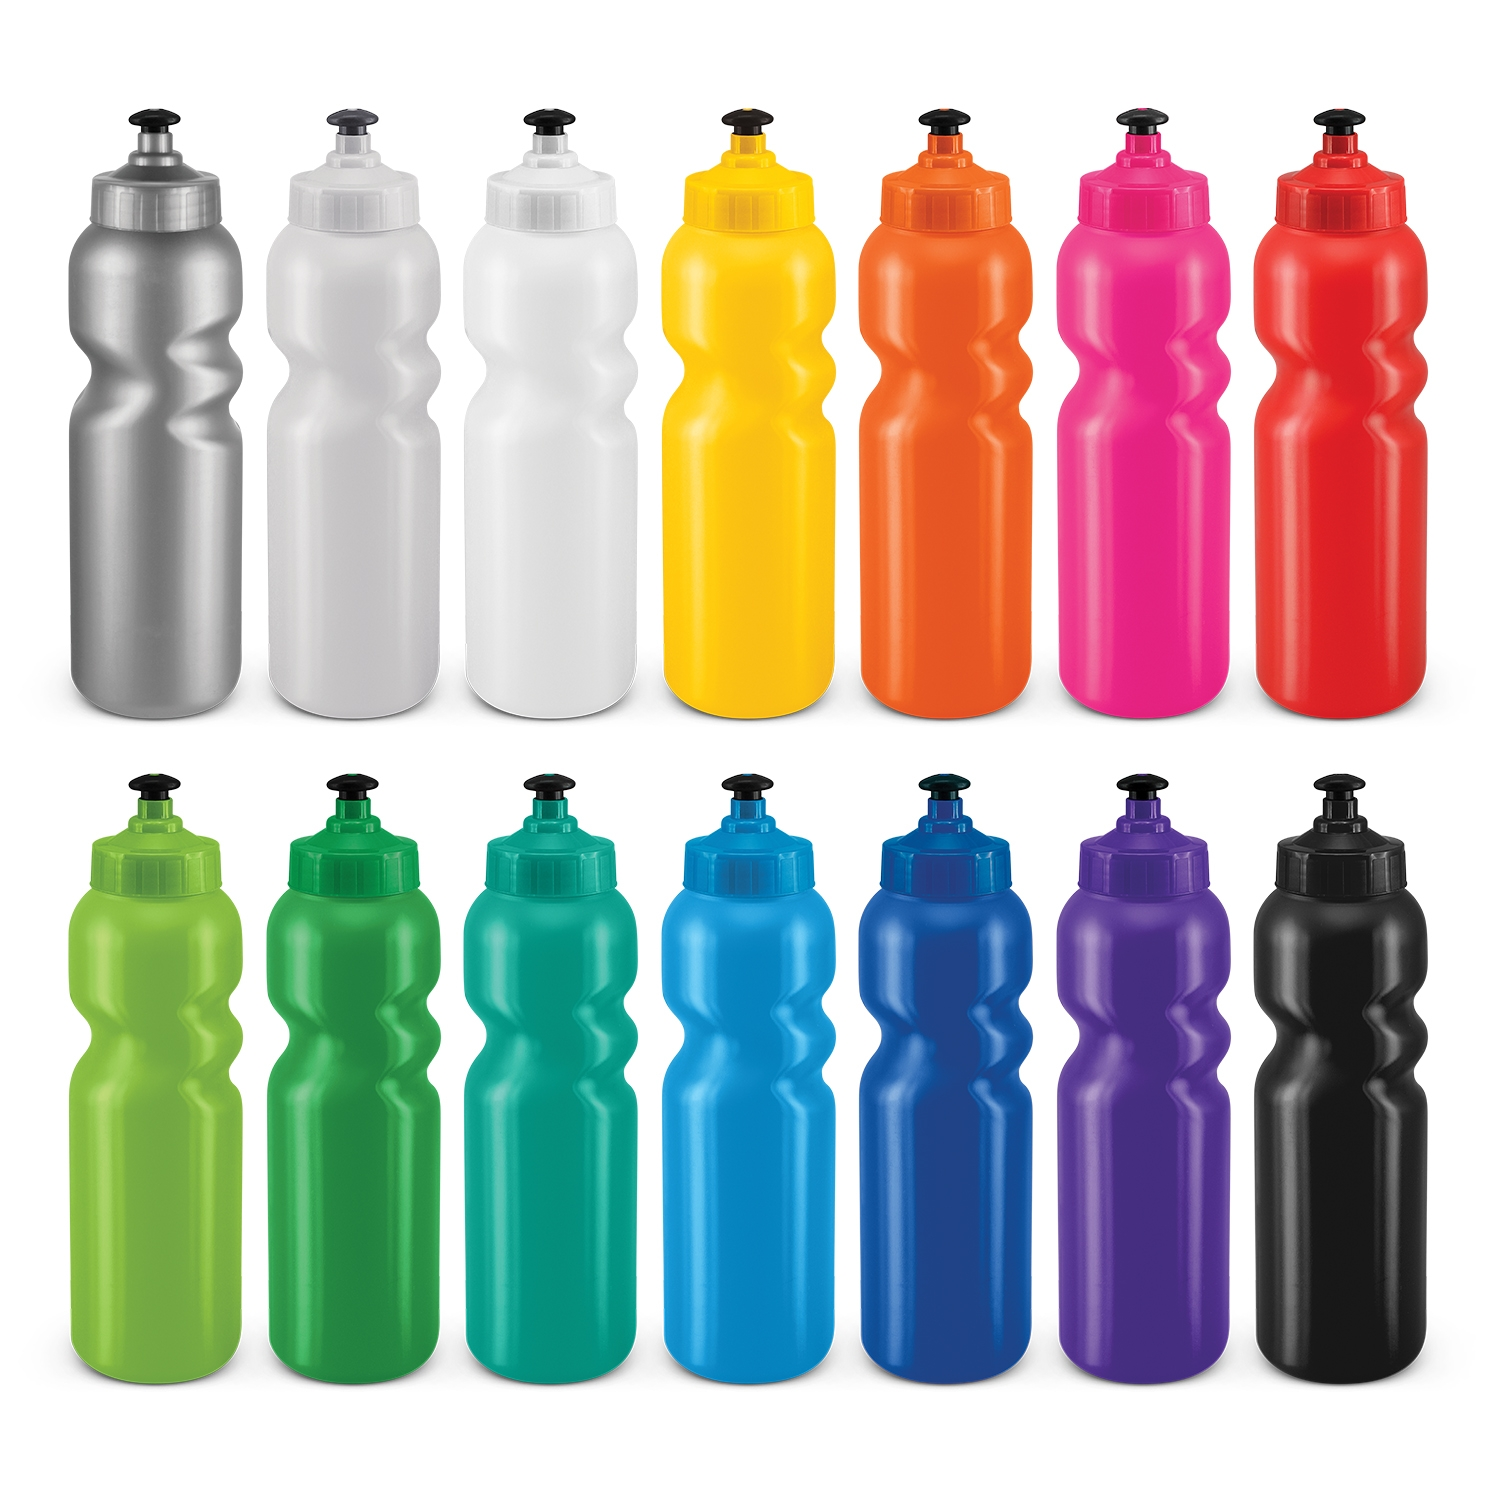 100153-15-Action Sipper Drink Bottle